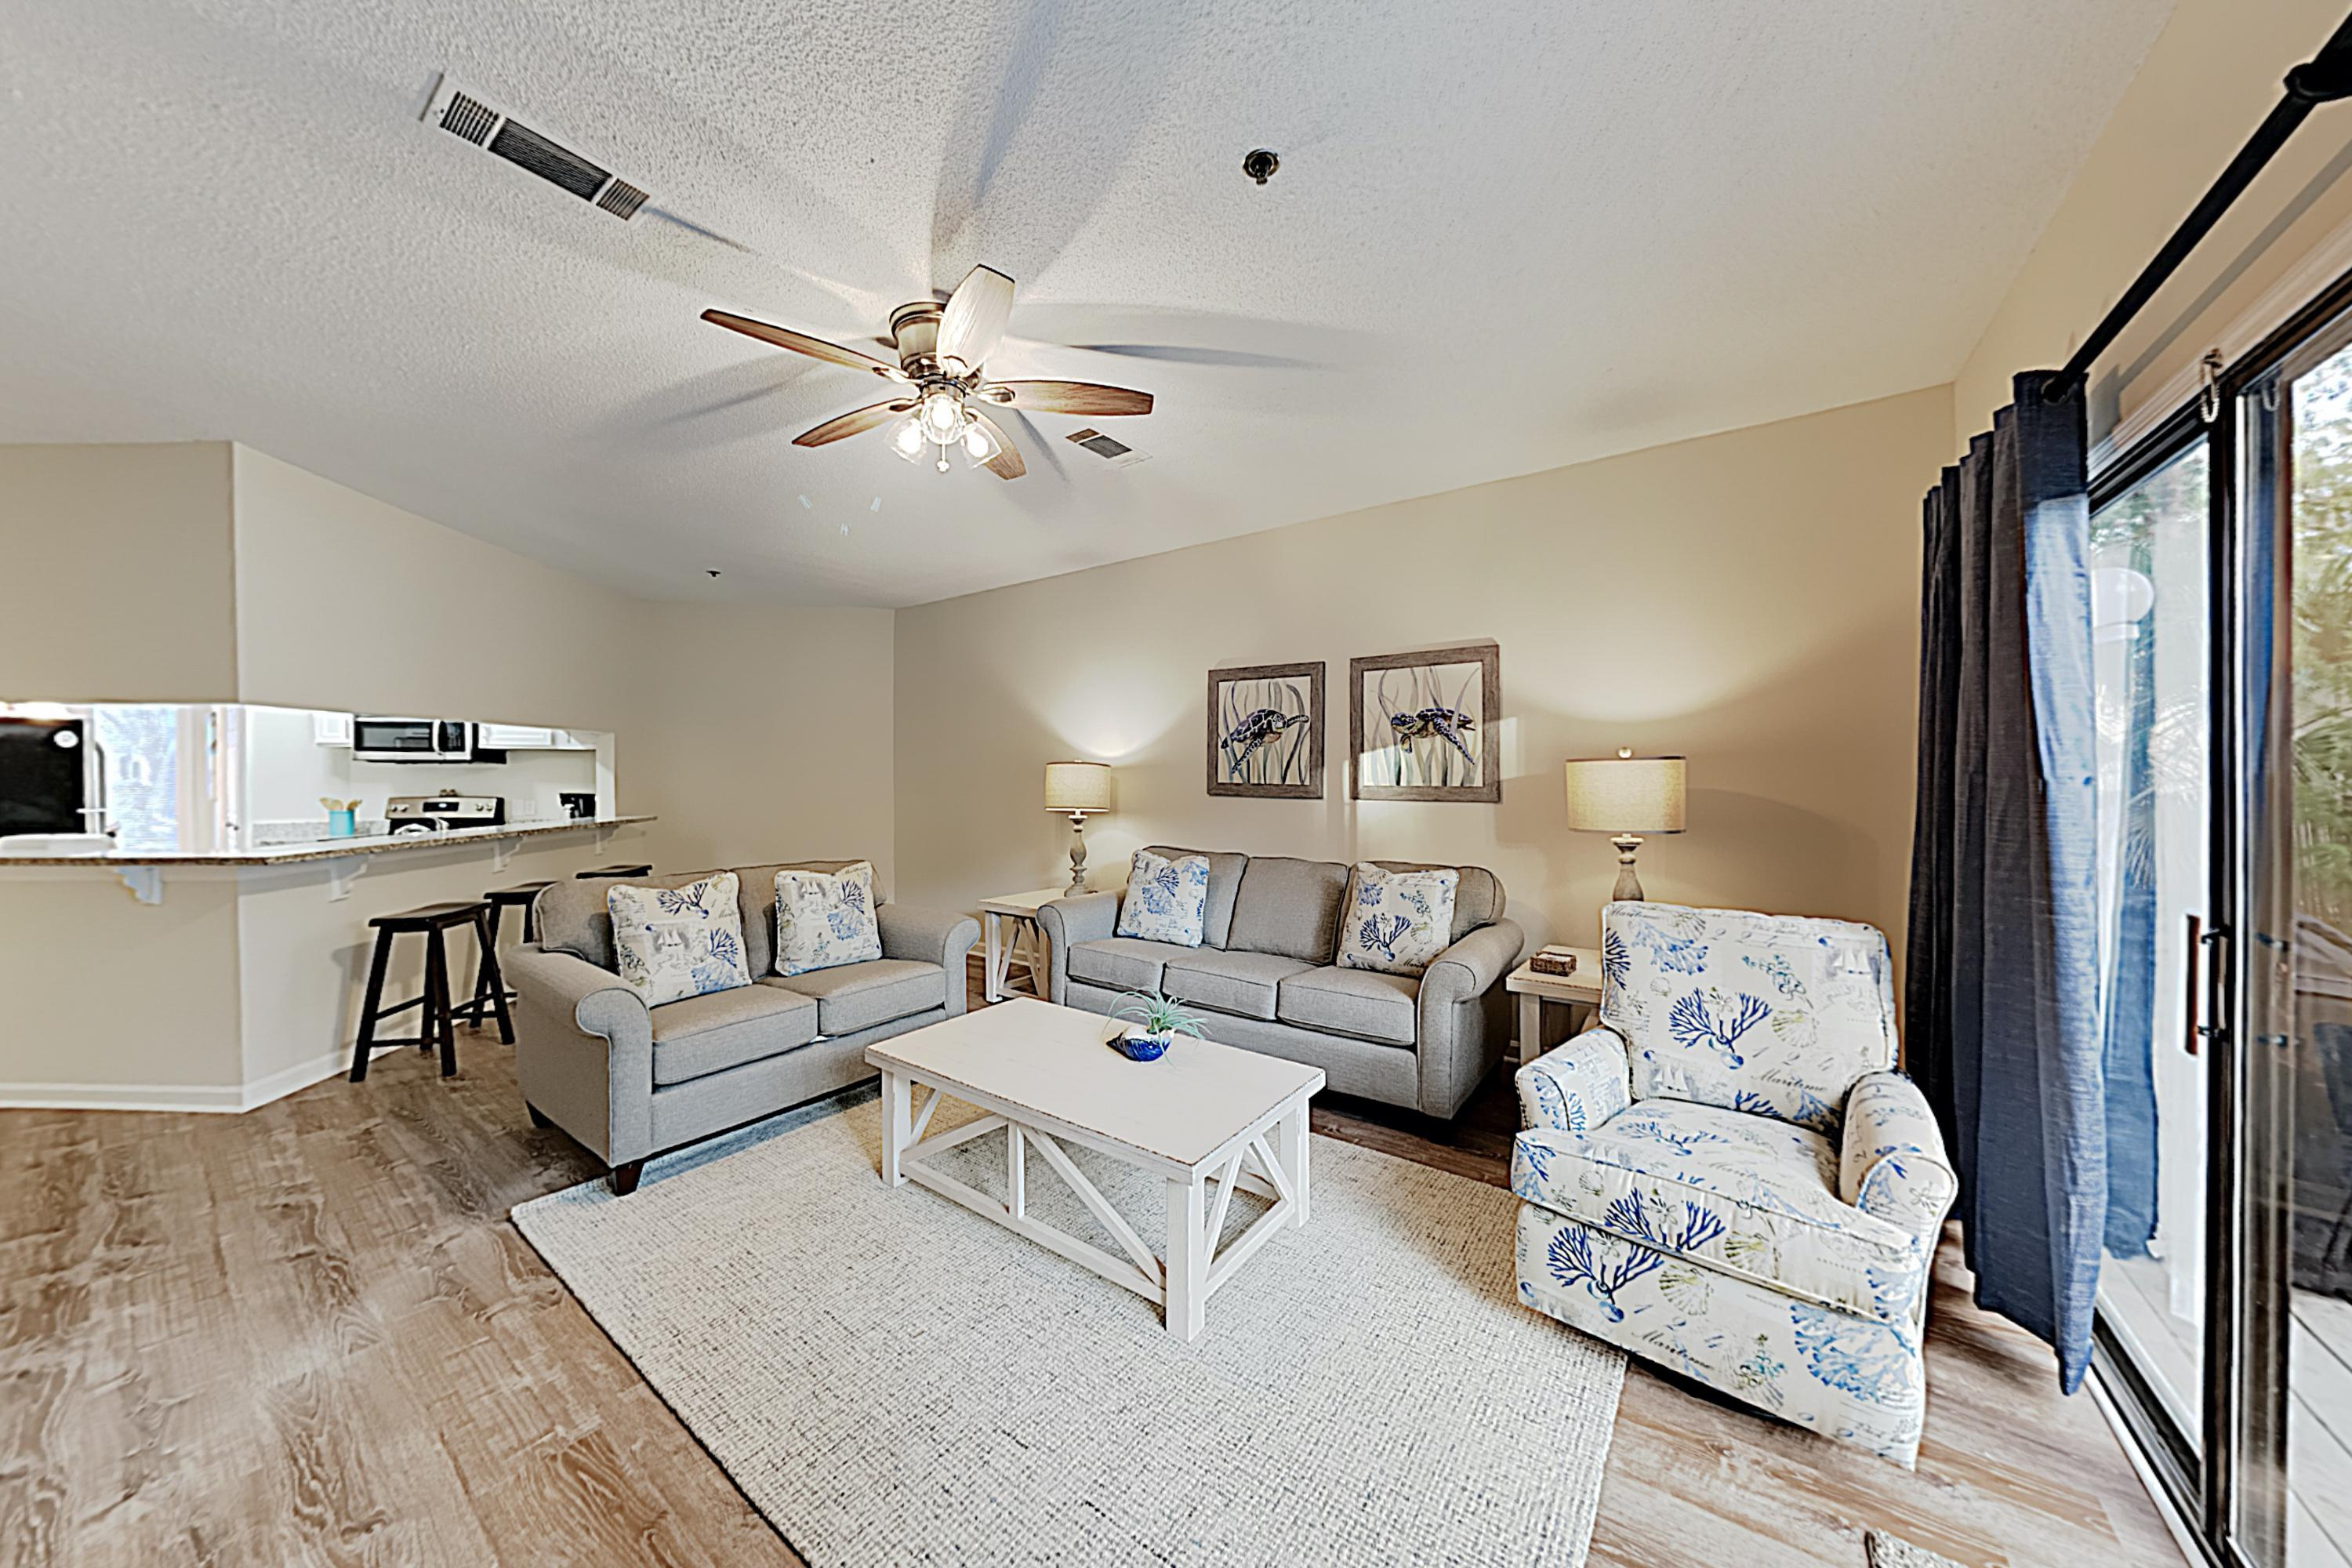 Welcome to Hilton Head Island! This Ocean Breeze townhome is professionally managed by TurnKey Vacation Rentals.